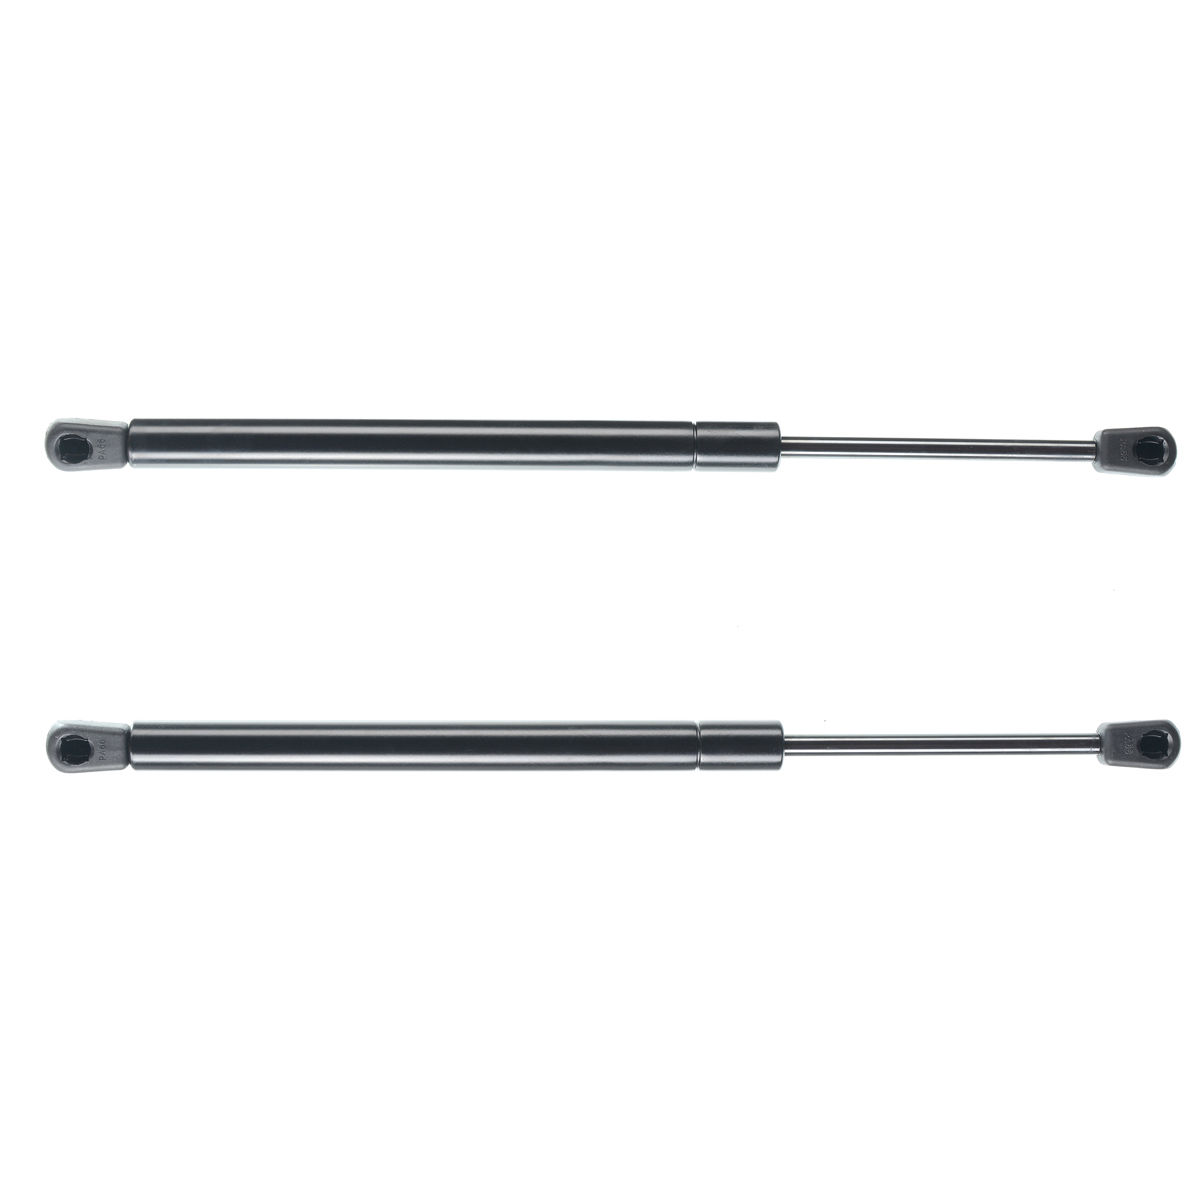 2 Pcs Front Hood Lift Supports Shock Struts For Toyota